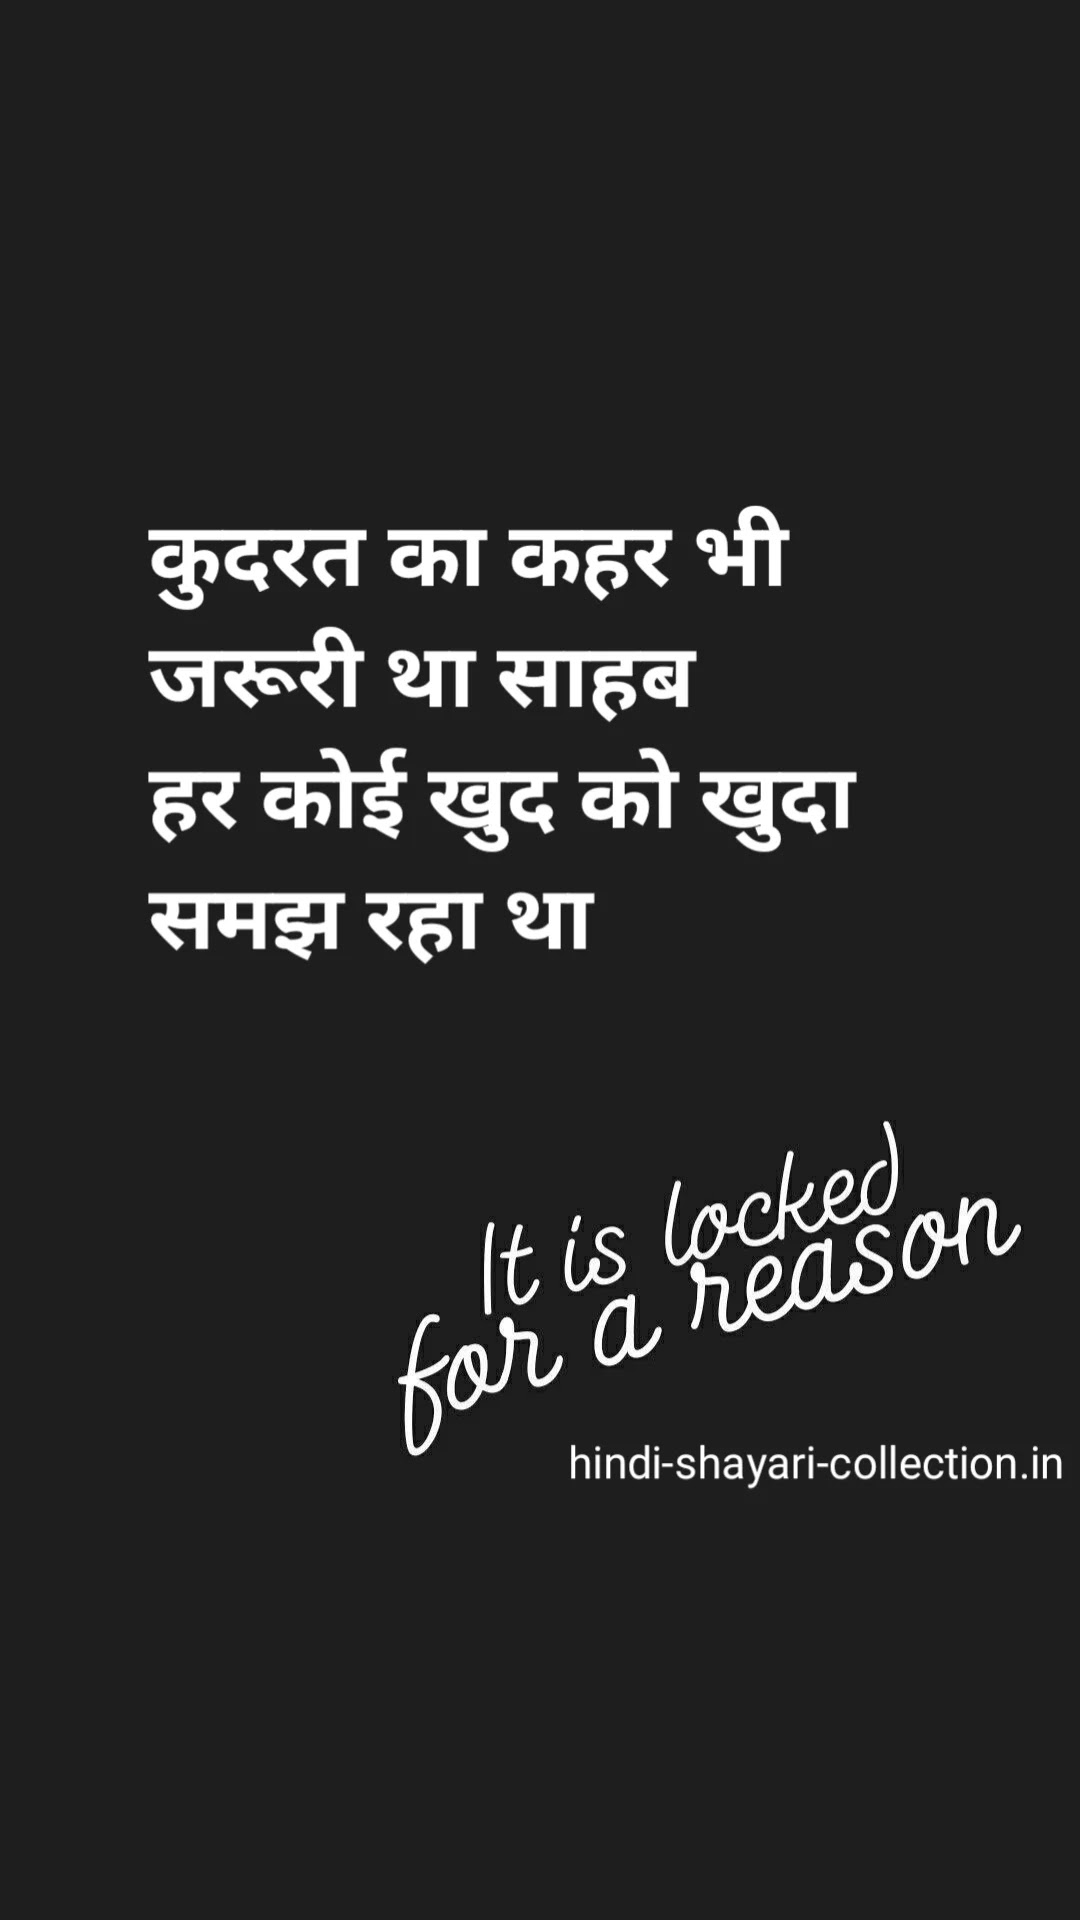 lockdown Shayari , Corona Quotes In Hindi , lockdown shayari dp, corona Quotes,